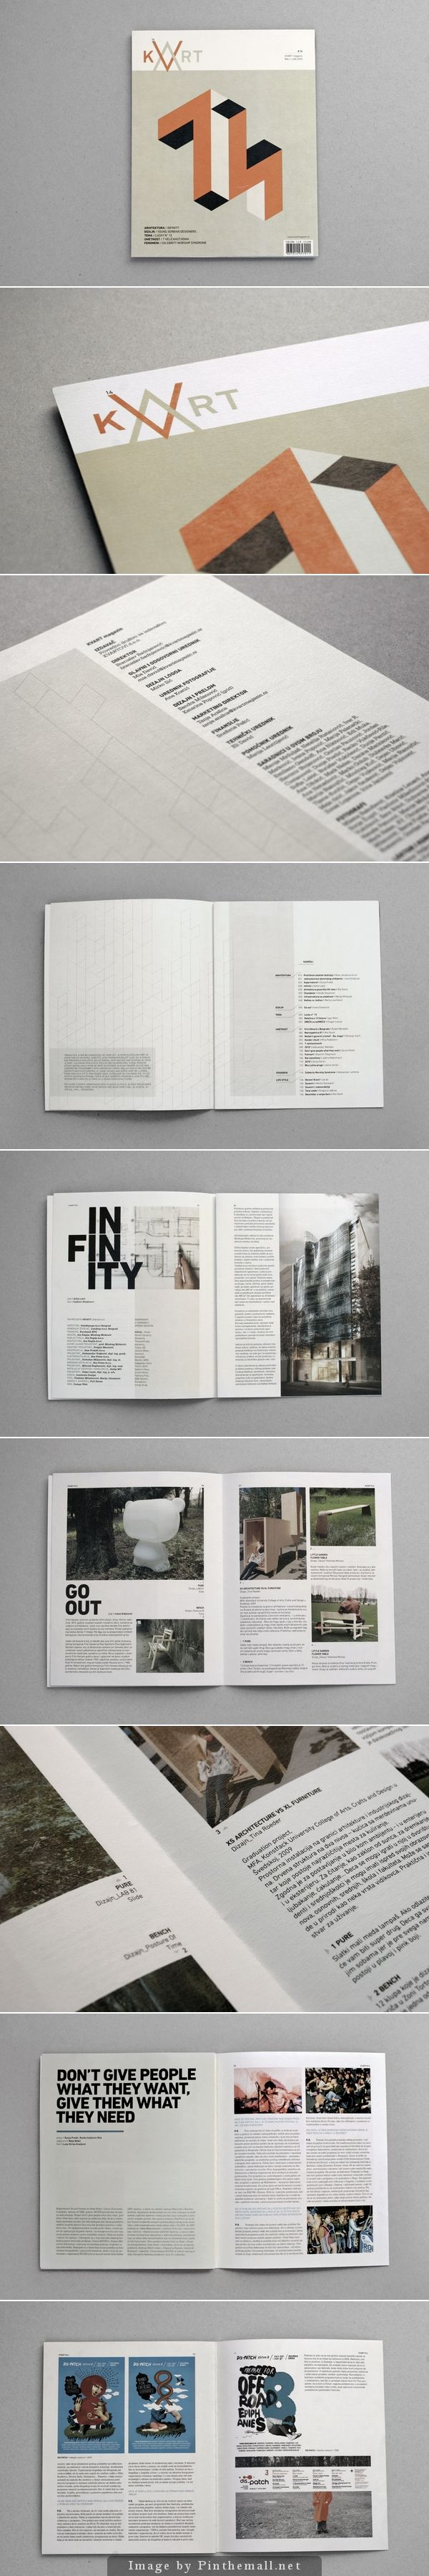 888 best Awesome magazine & book layout images on Pinterest ...